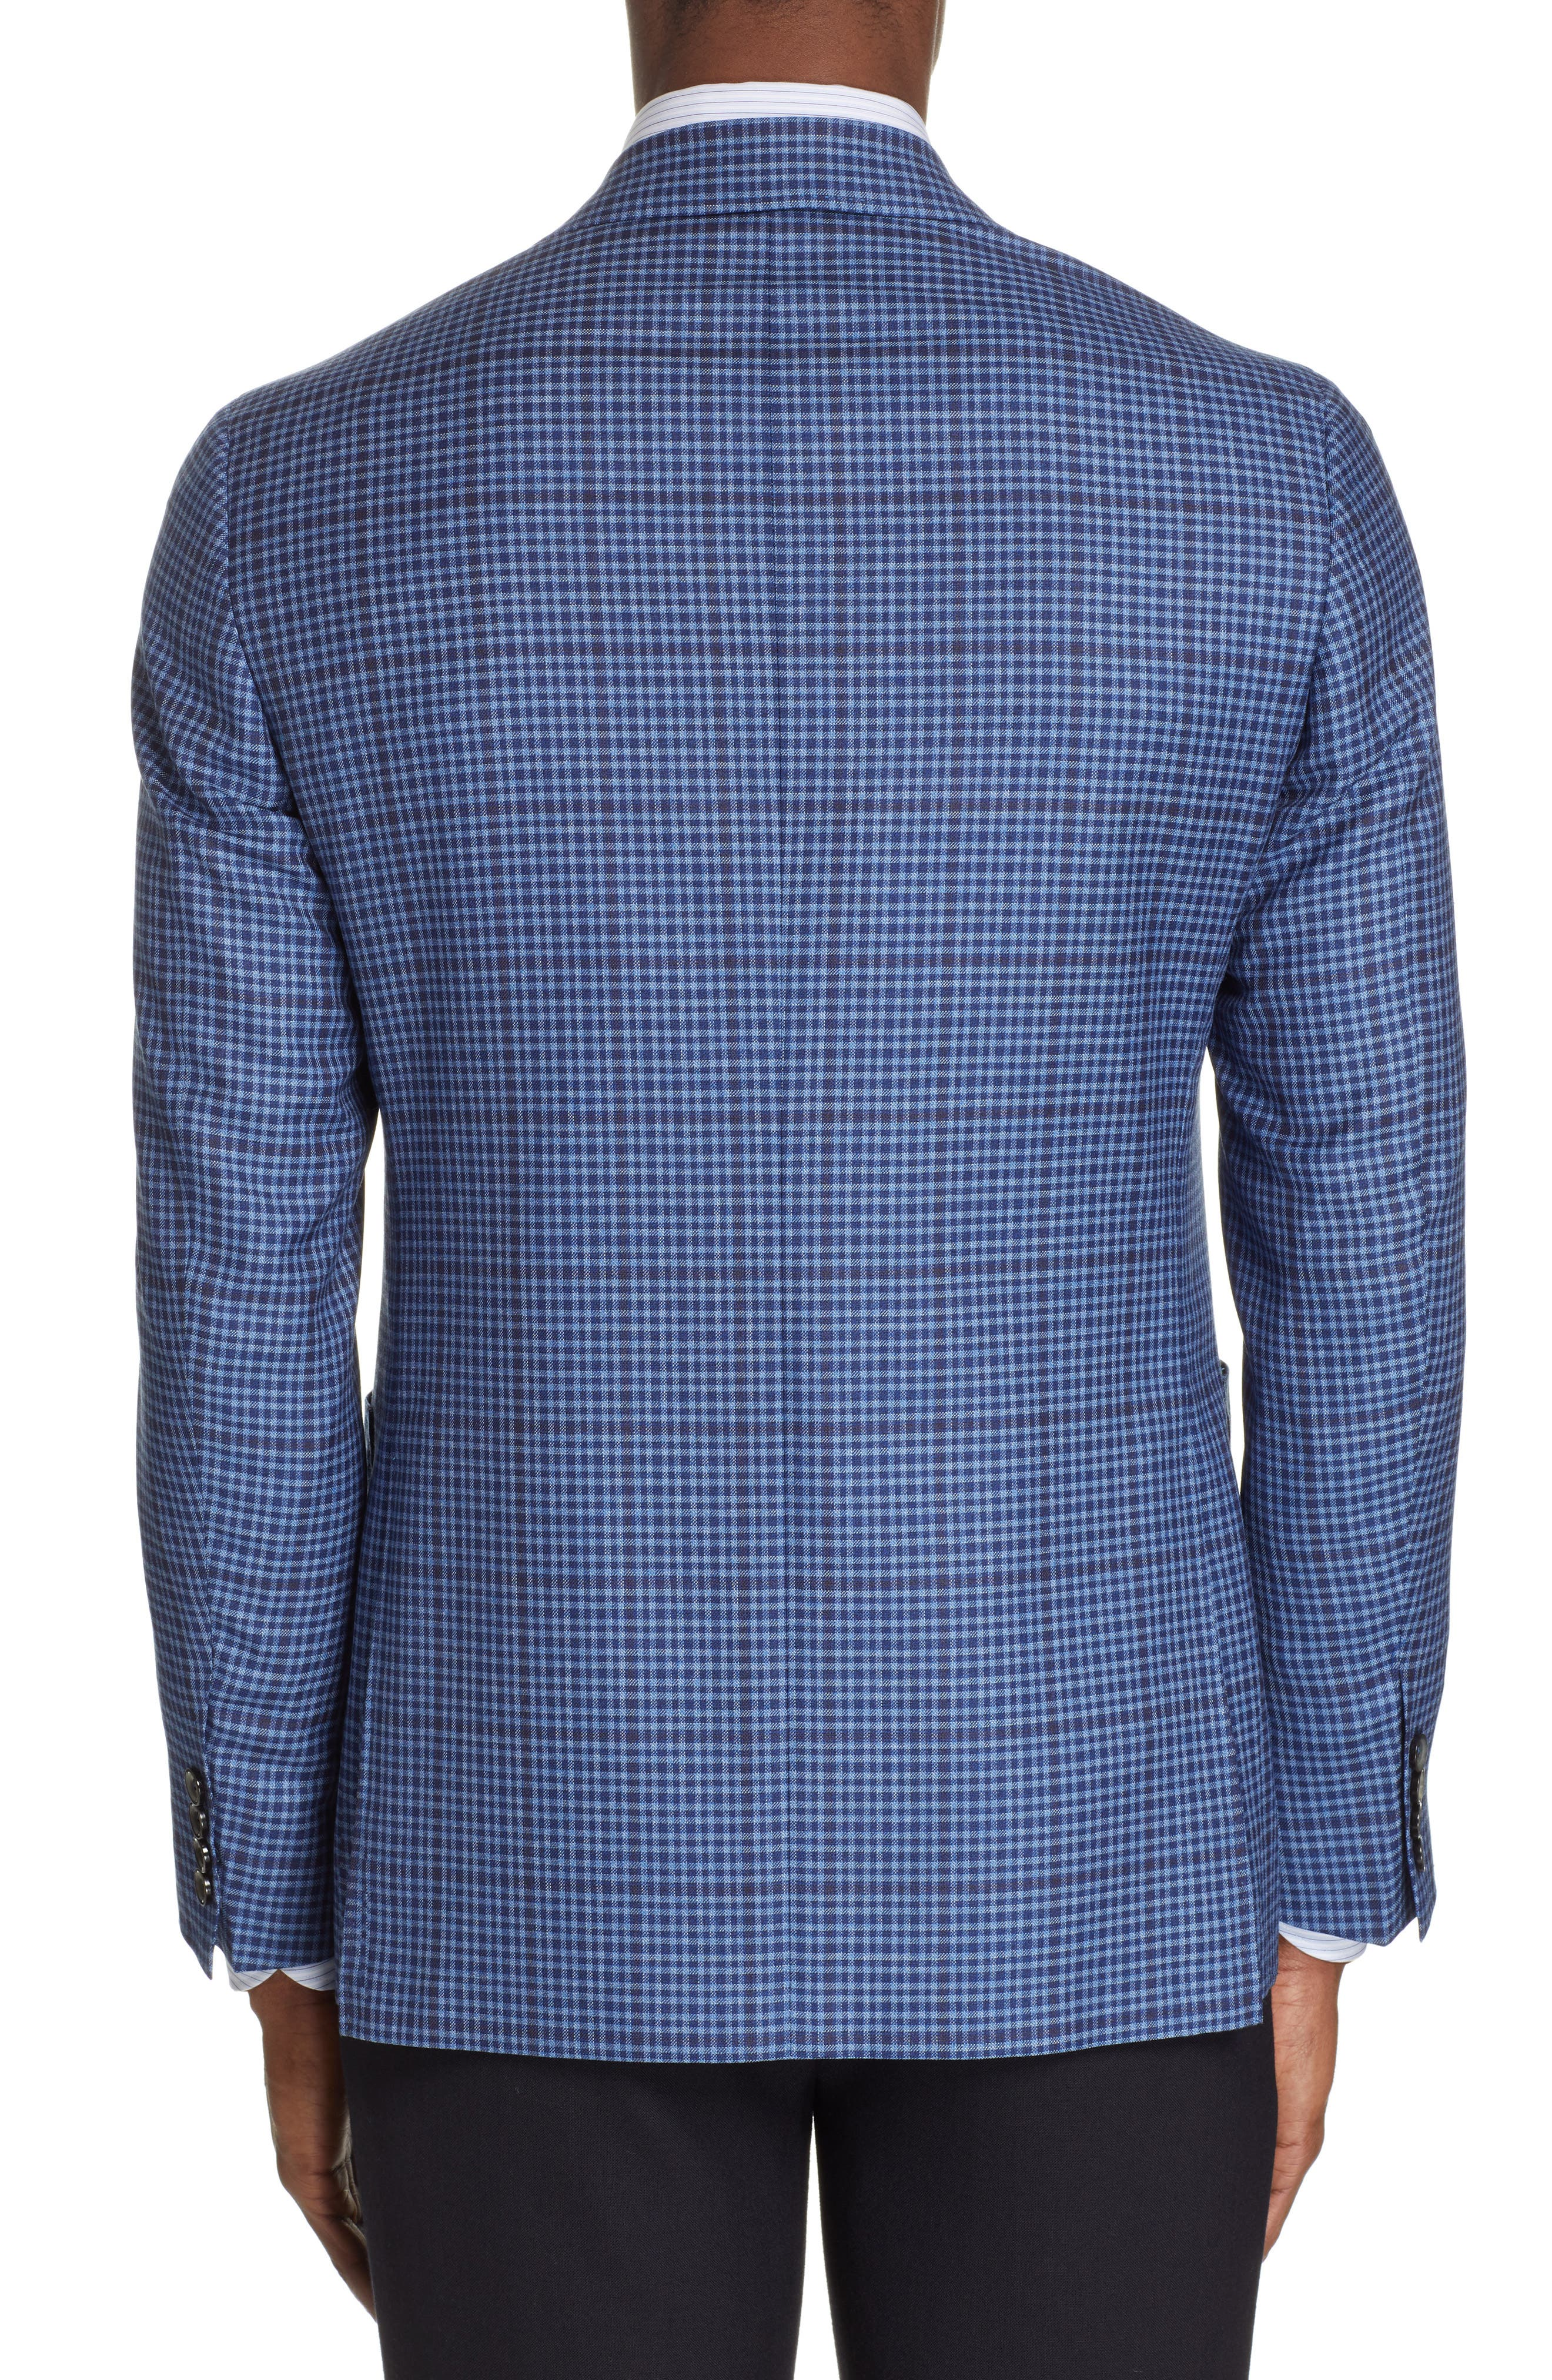 CANALI, Kei Classic Fit Check Wool Sport Coat, Alternate thumbnail 2, color, BLUE